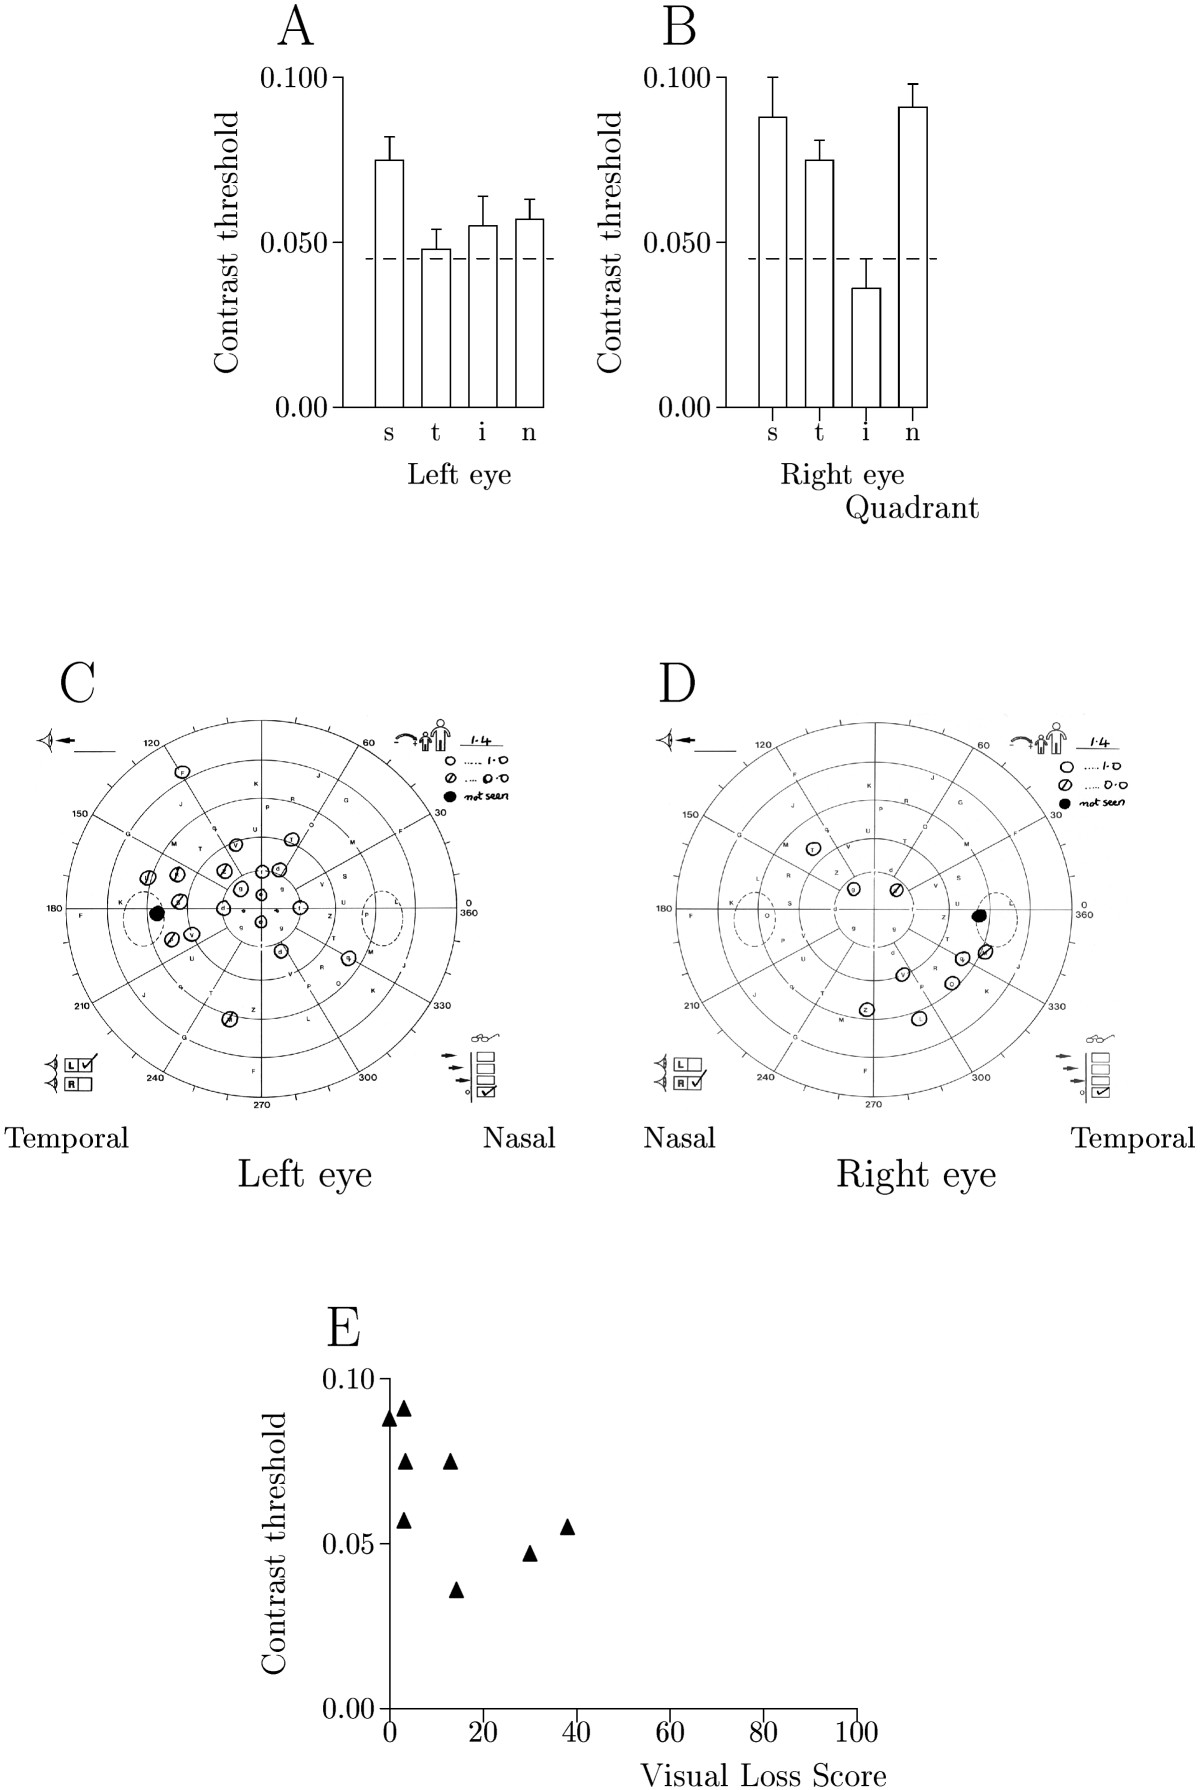 http://static-content.springer.com/image/art%3A10.1186%2F1471-2415-5-22/MediaObjects/12886_2005_Article_55_Fig4_HTML.jpg